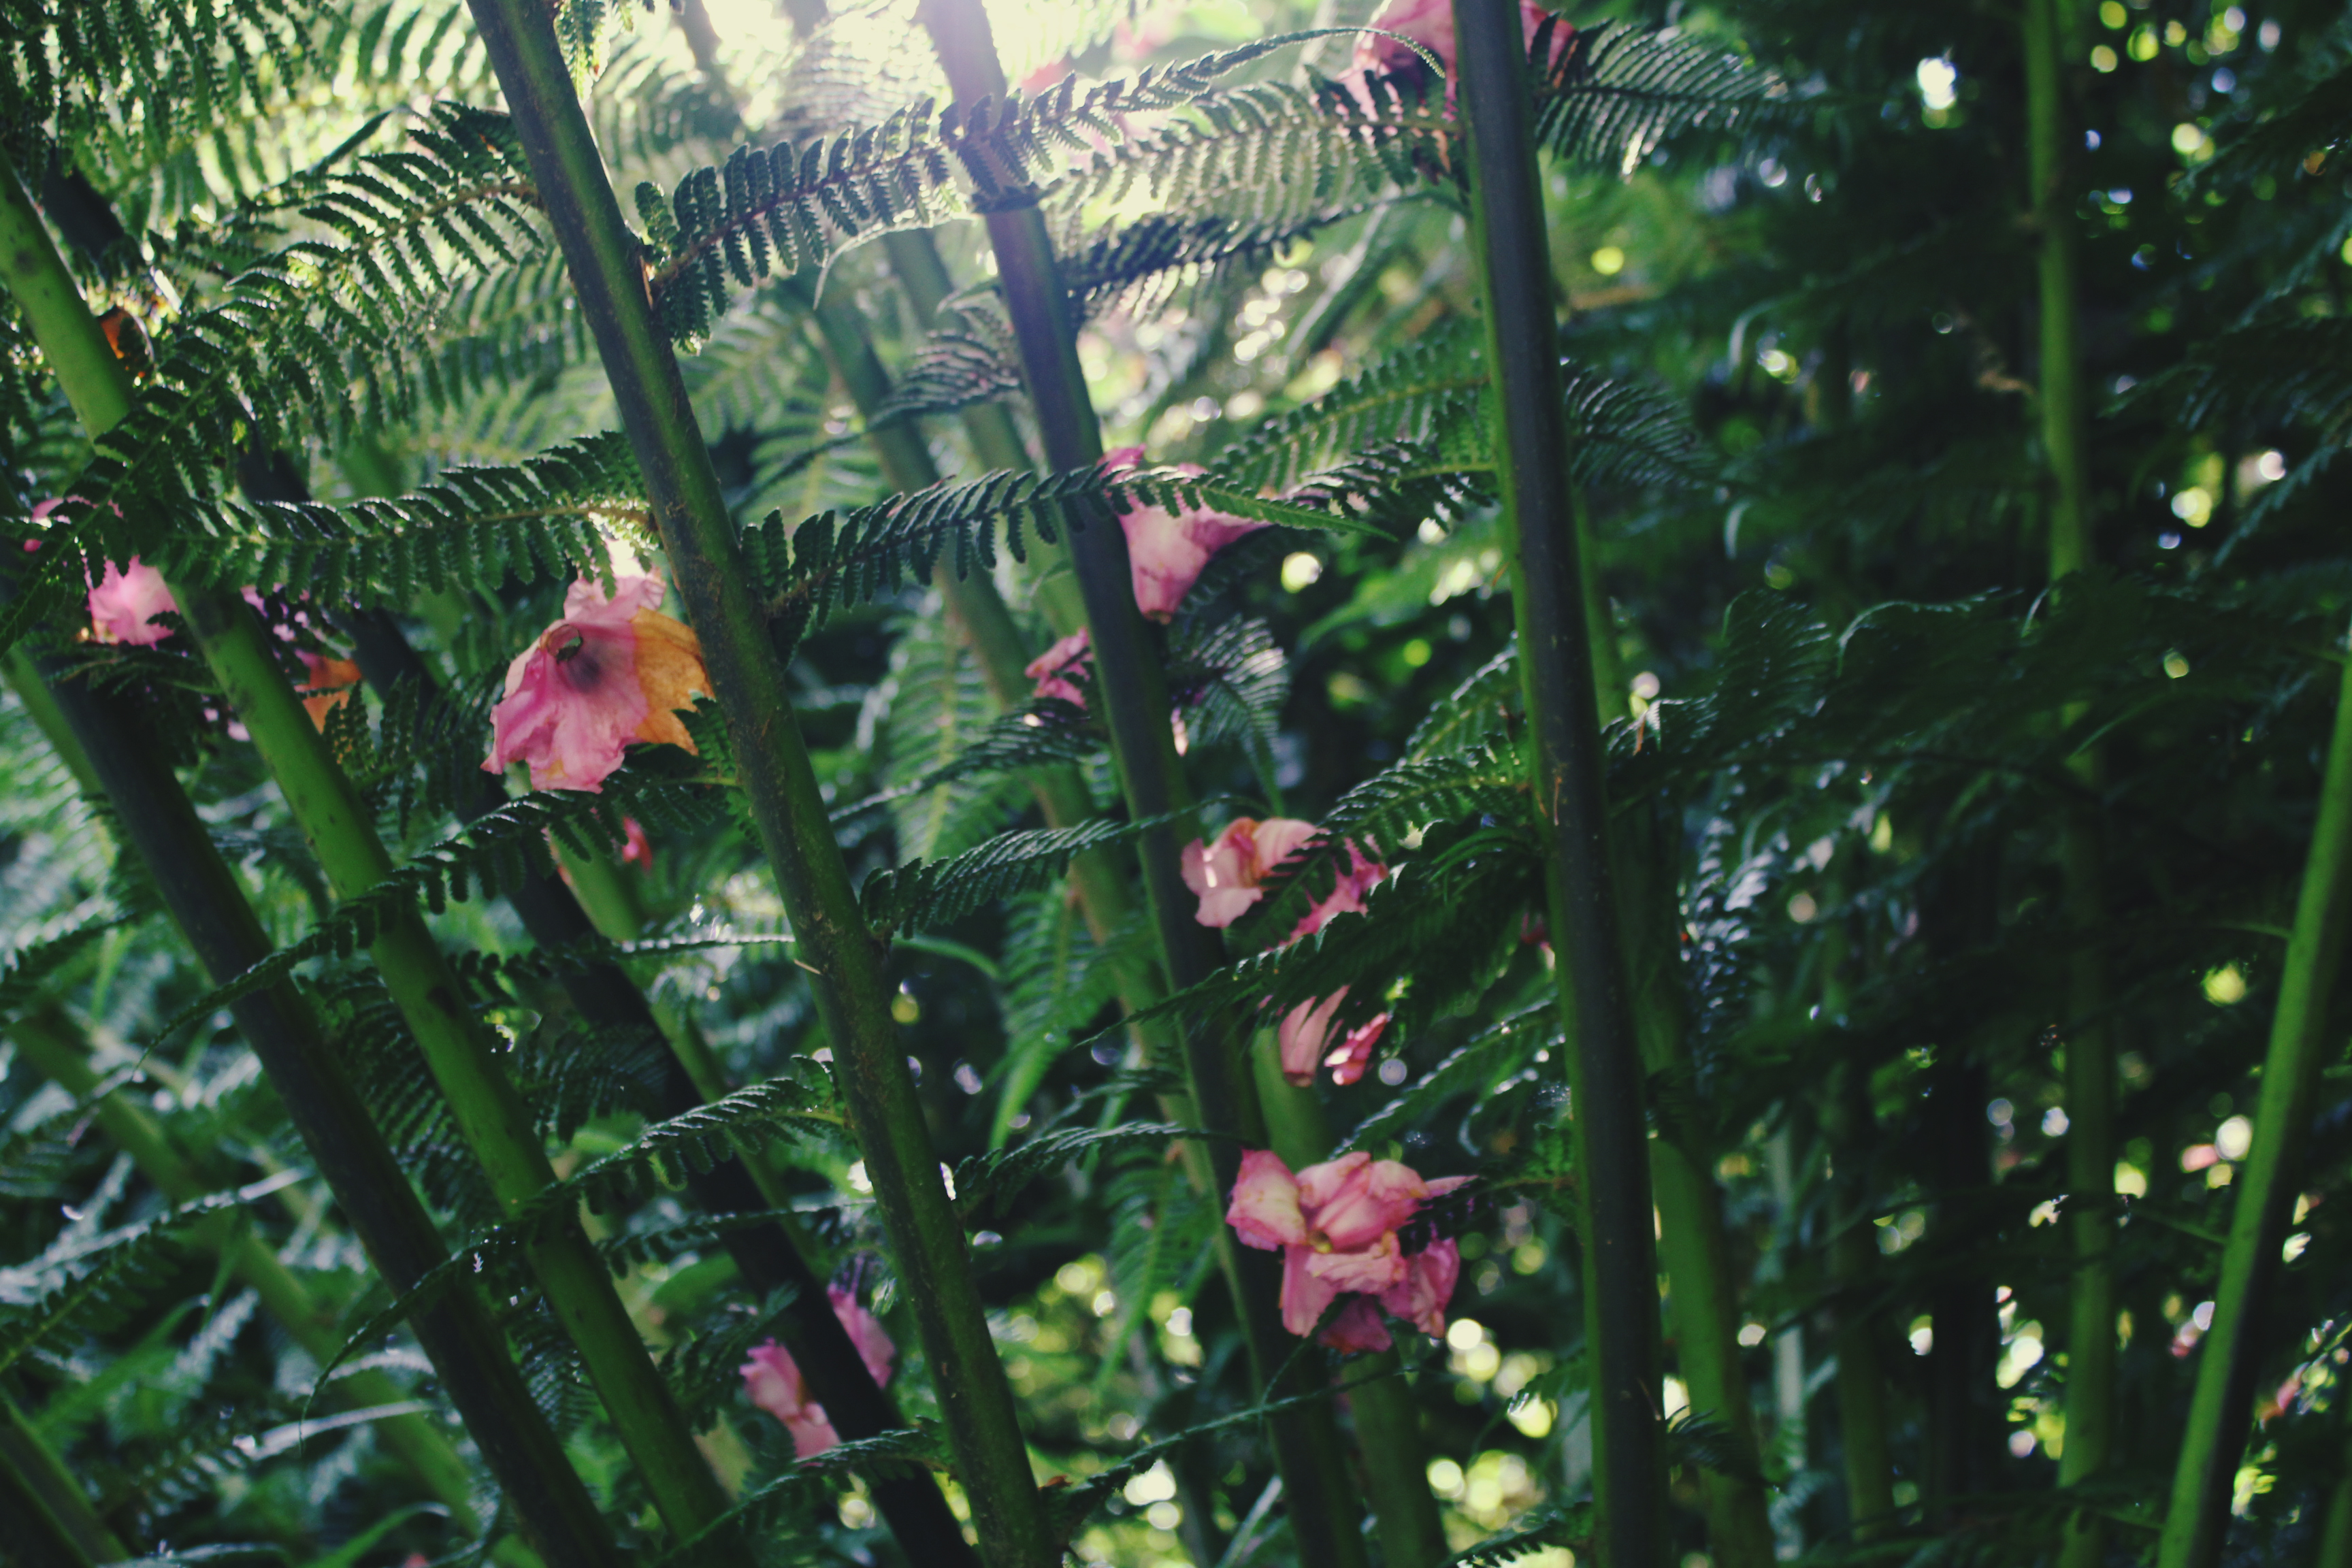 Pink fuchsia blossoms in the sun dappled fern